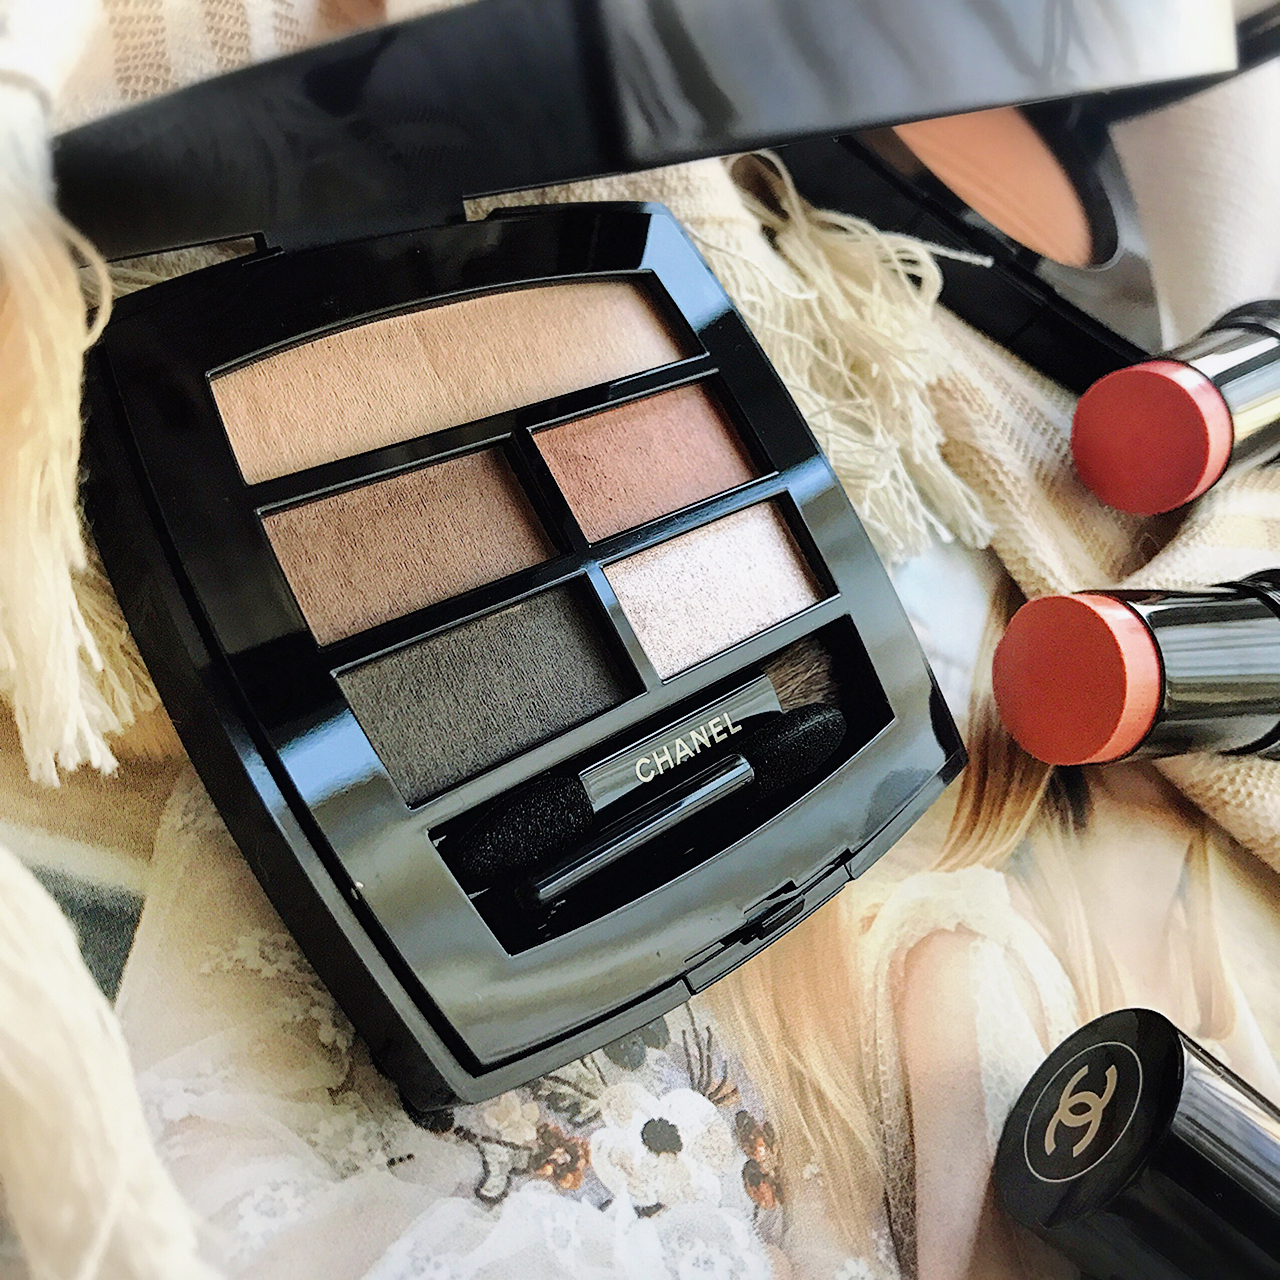 Chanel Les Beiges Healthy Glow Natural Eyeshadow Palette & Sheer Colour Stick